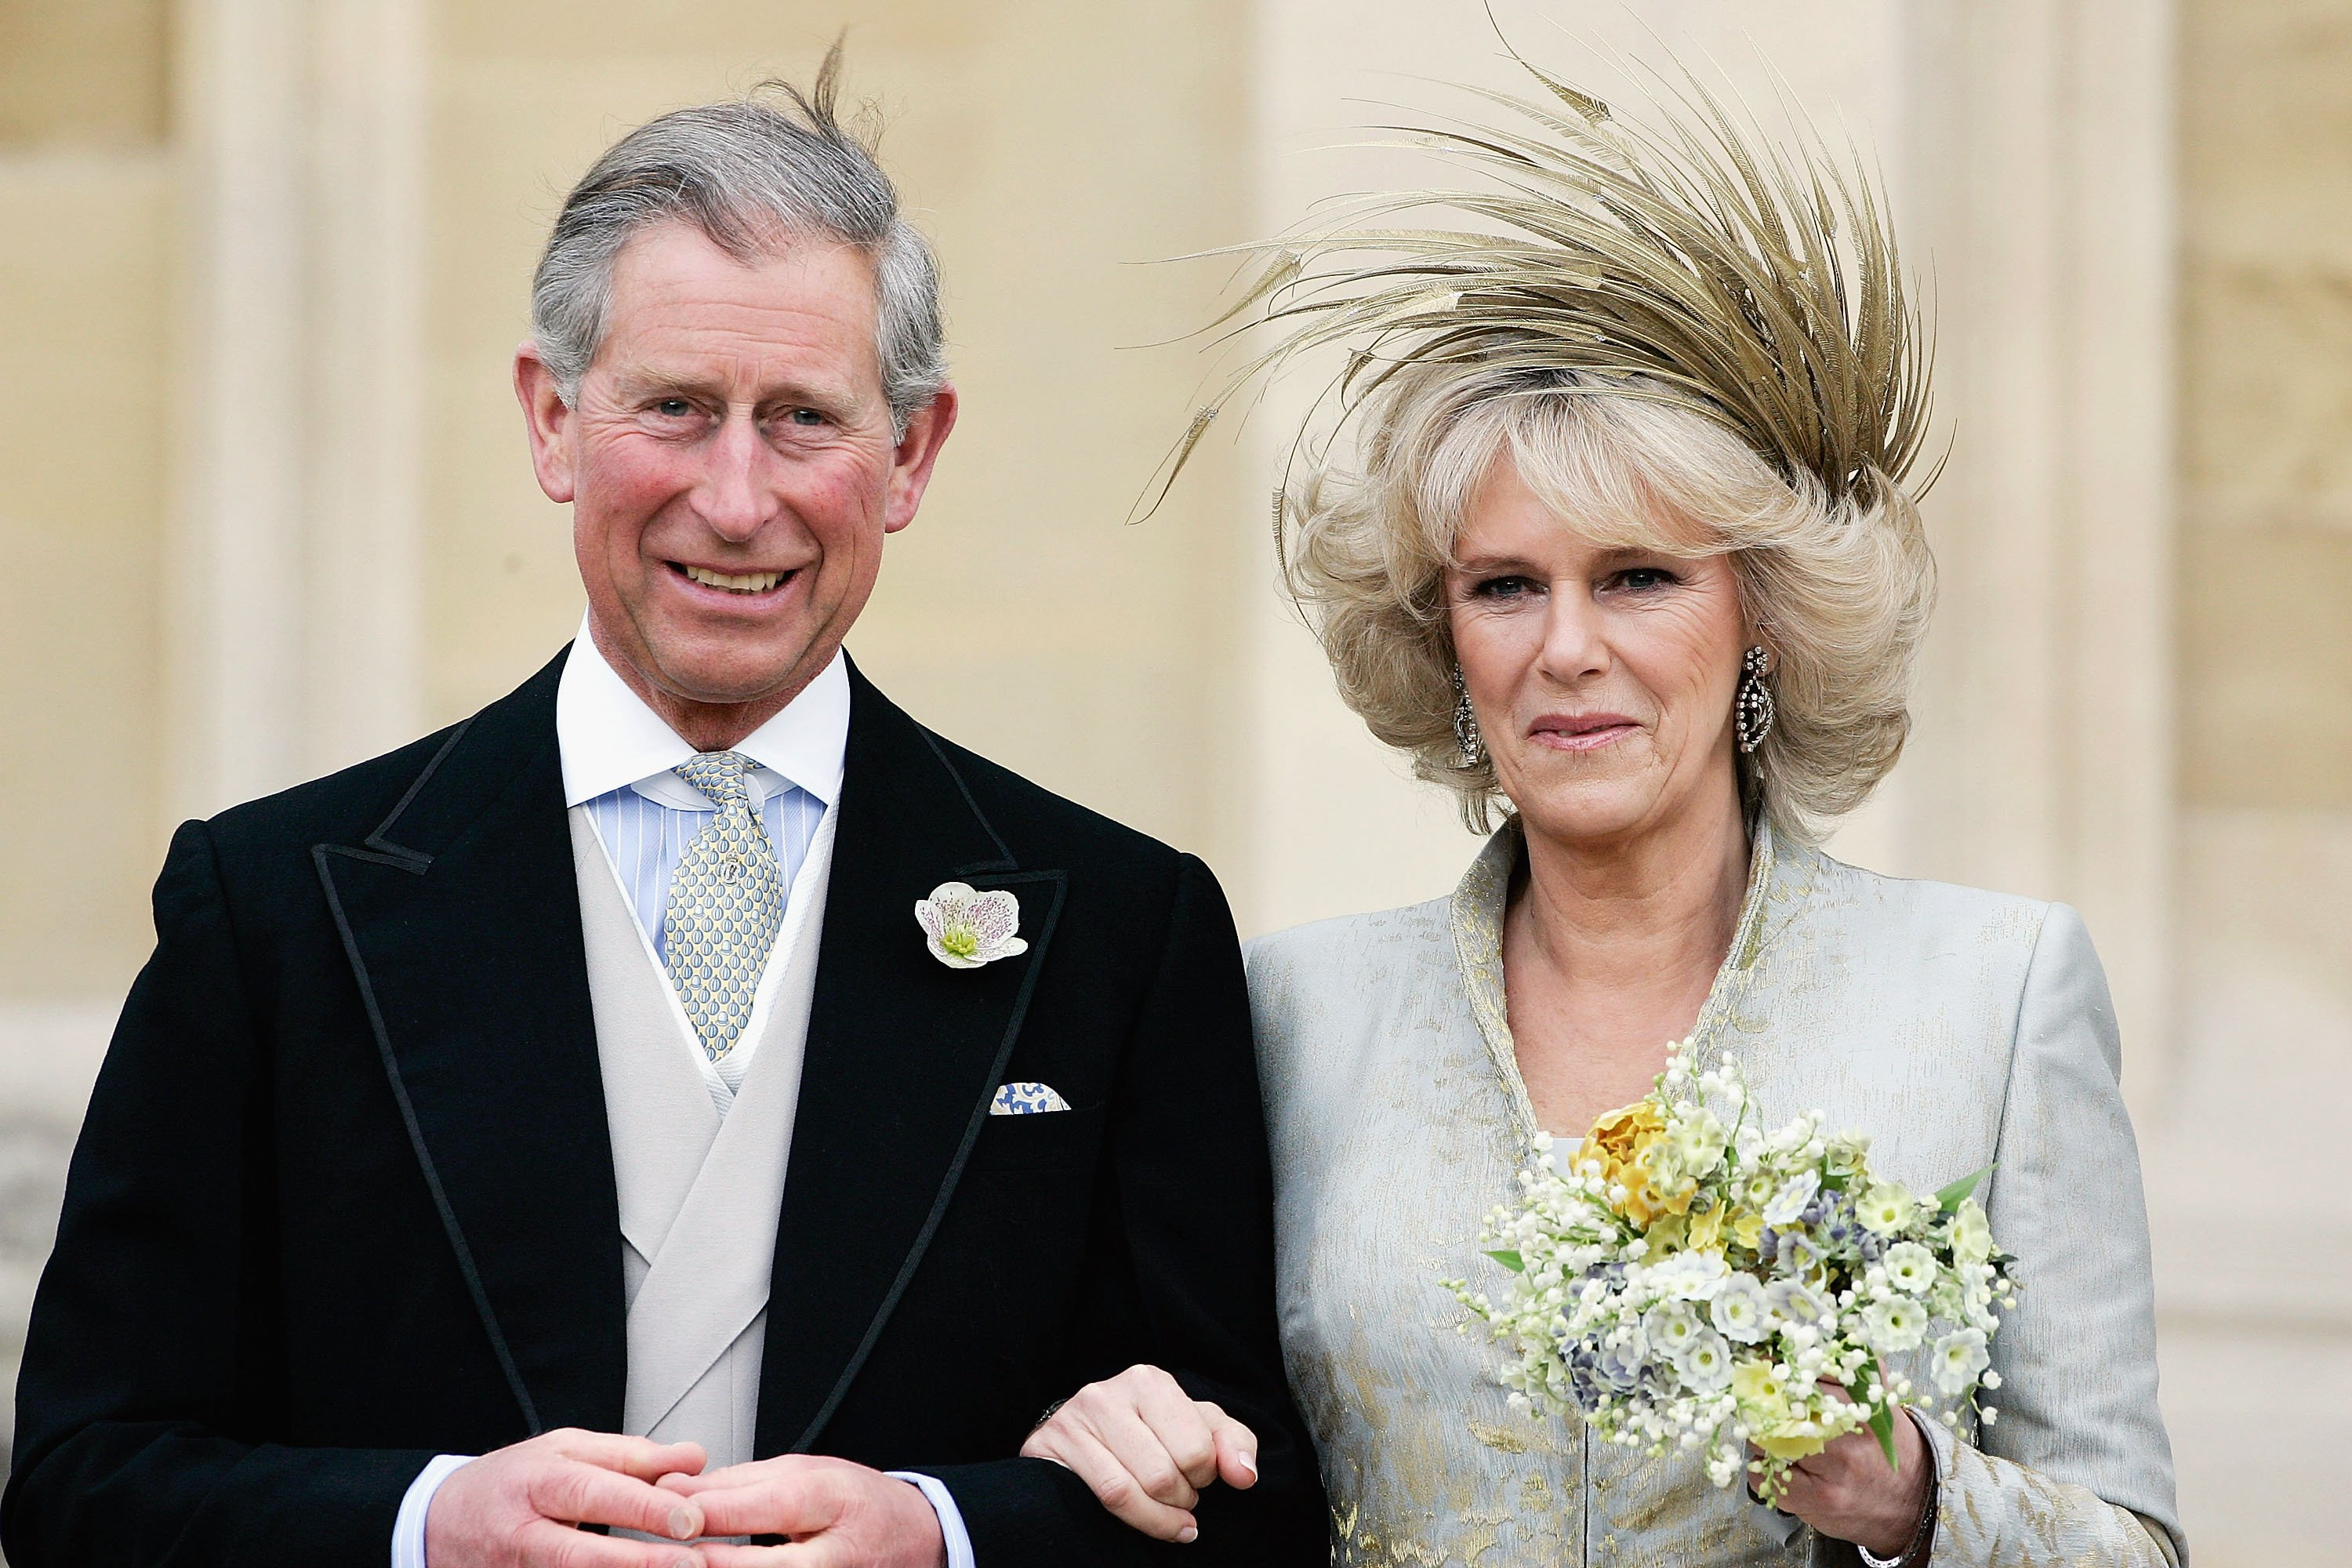 The Prince of Wales, Prince Charles, and The Duchess Of Cornwall, Camilla Parker Bowles pictured at the Service of Prayer and Dedication blessing their marriage at Windsor Castle on April, 2005, England.   Photo: Getty Images